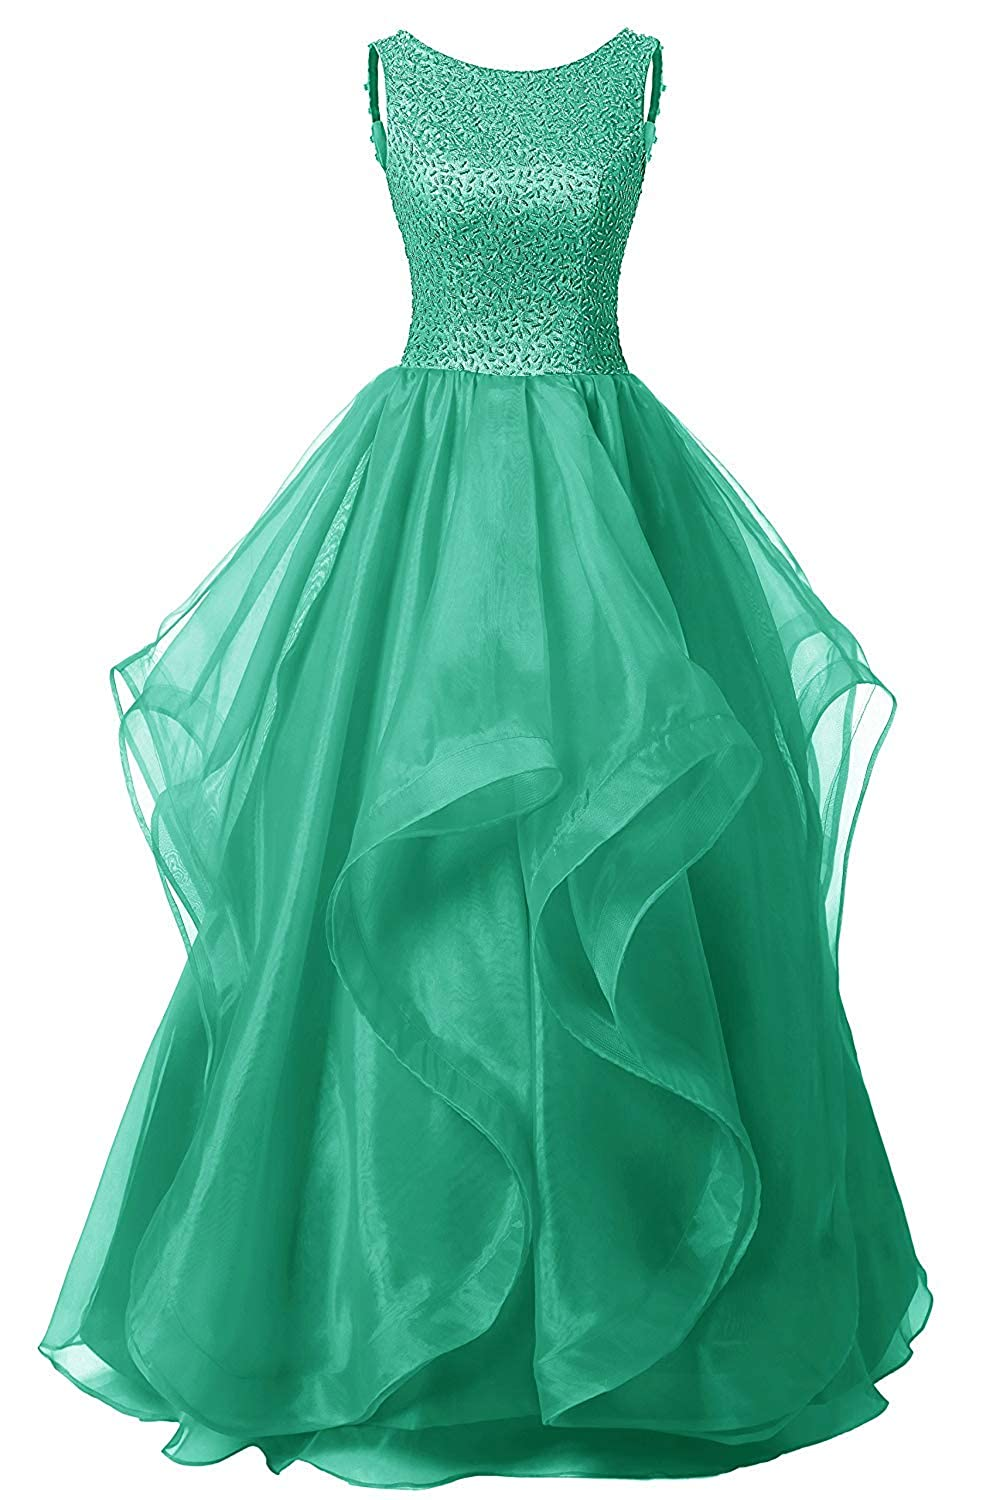 Green Uther Long Formal Evening Prom Dress Organza Bridesmaid Dresses Beaded Gown